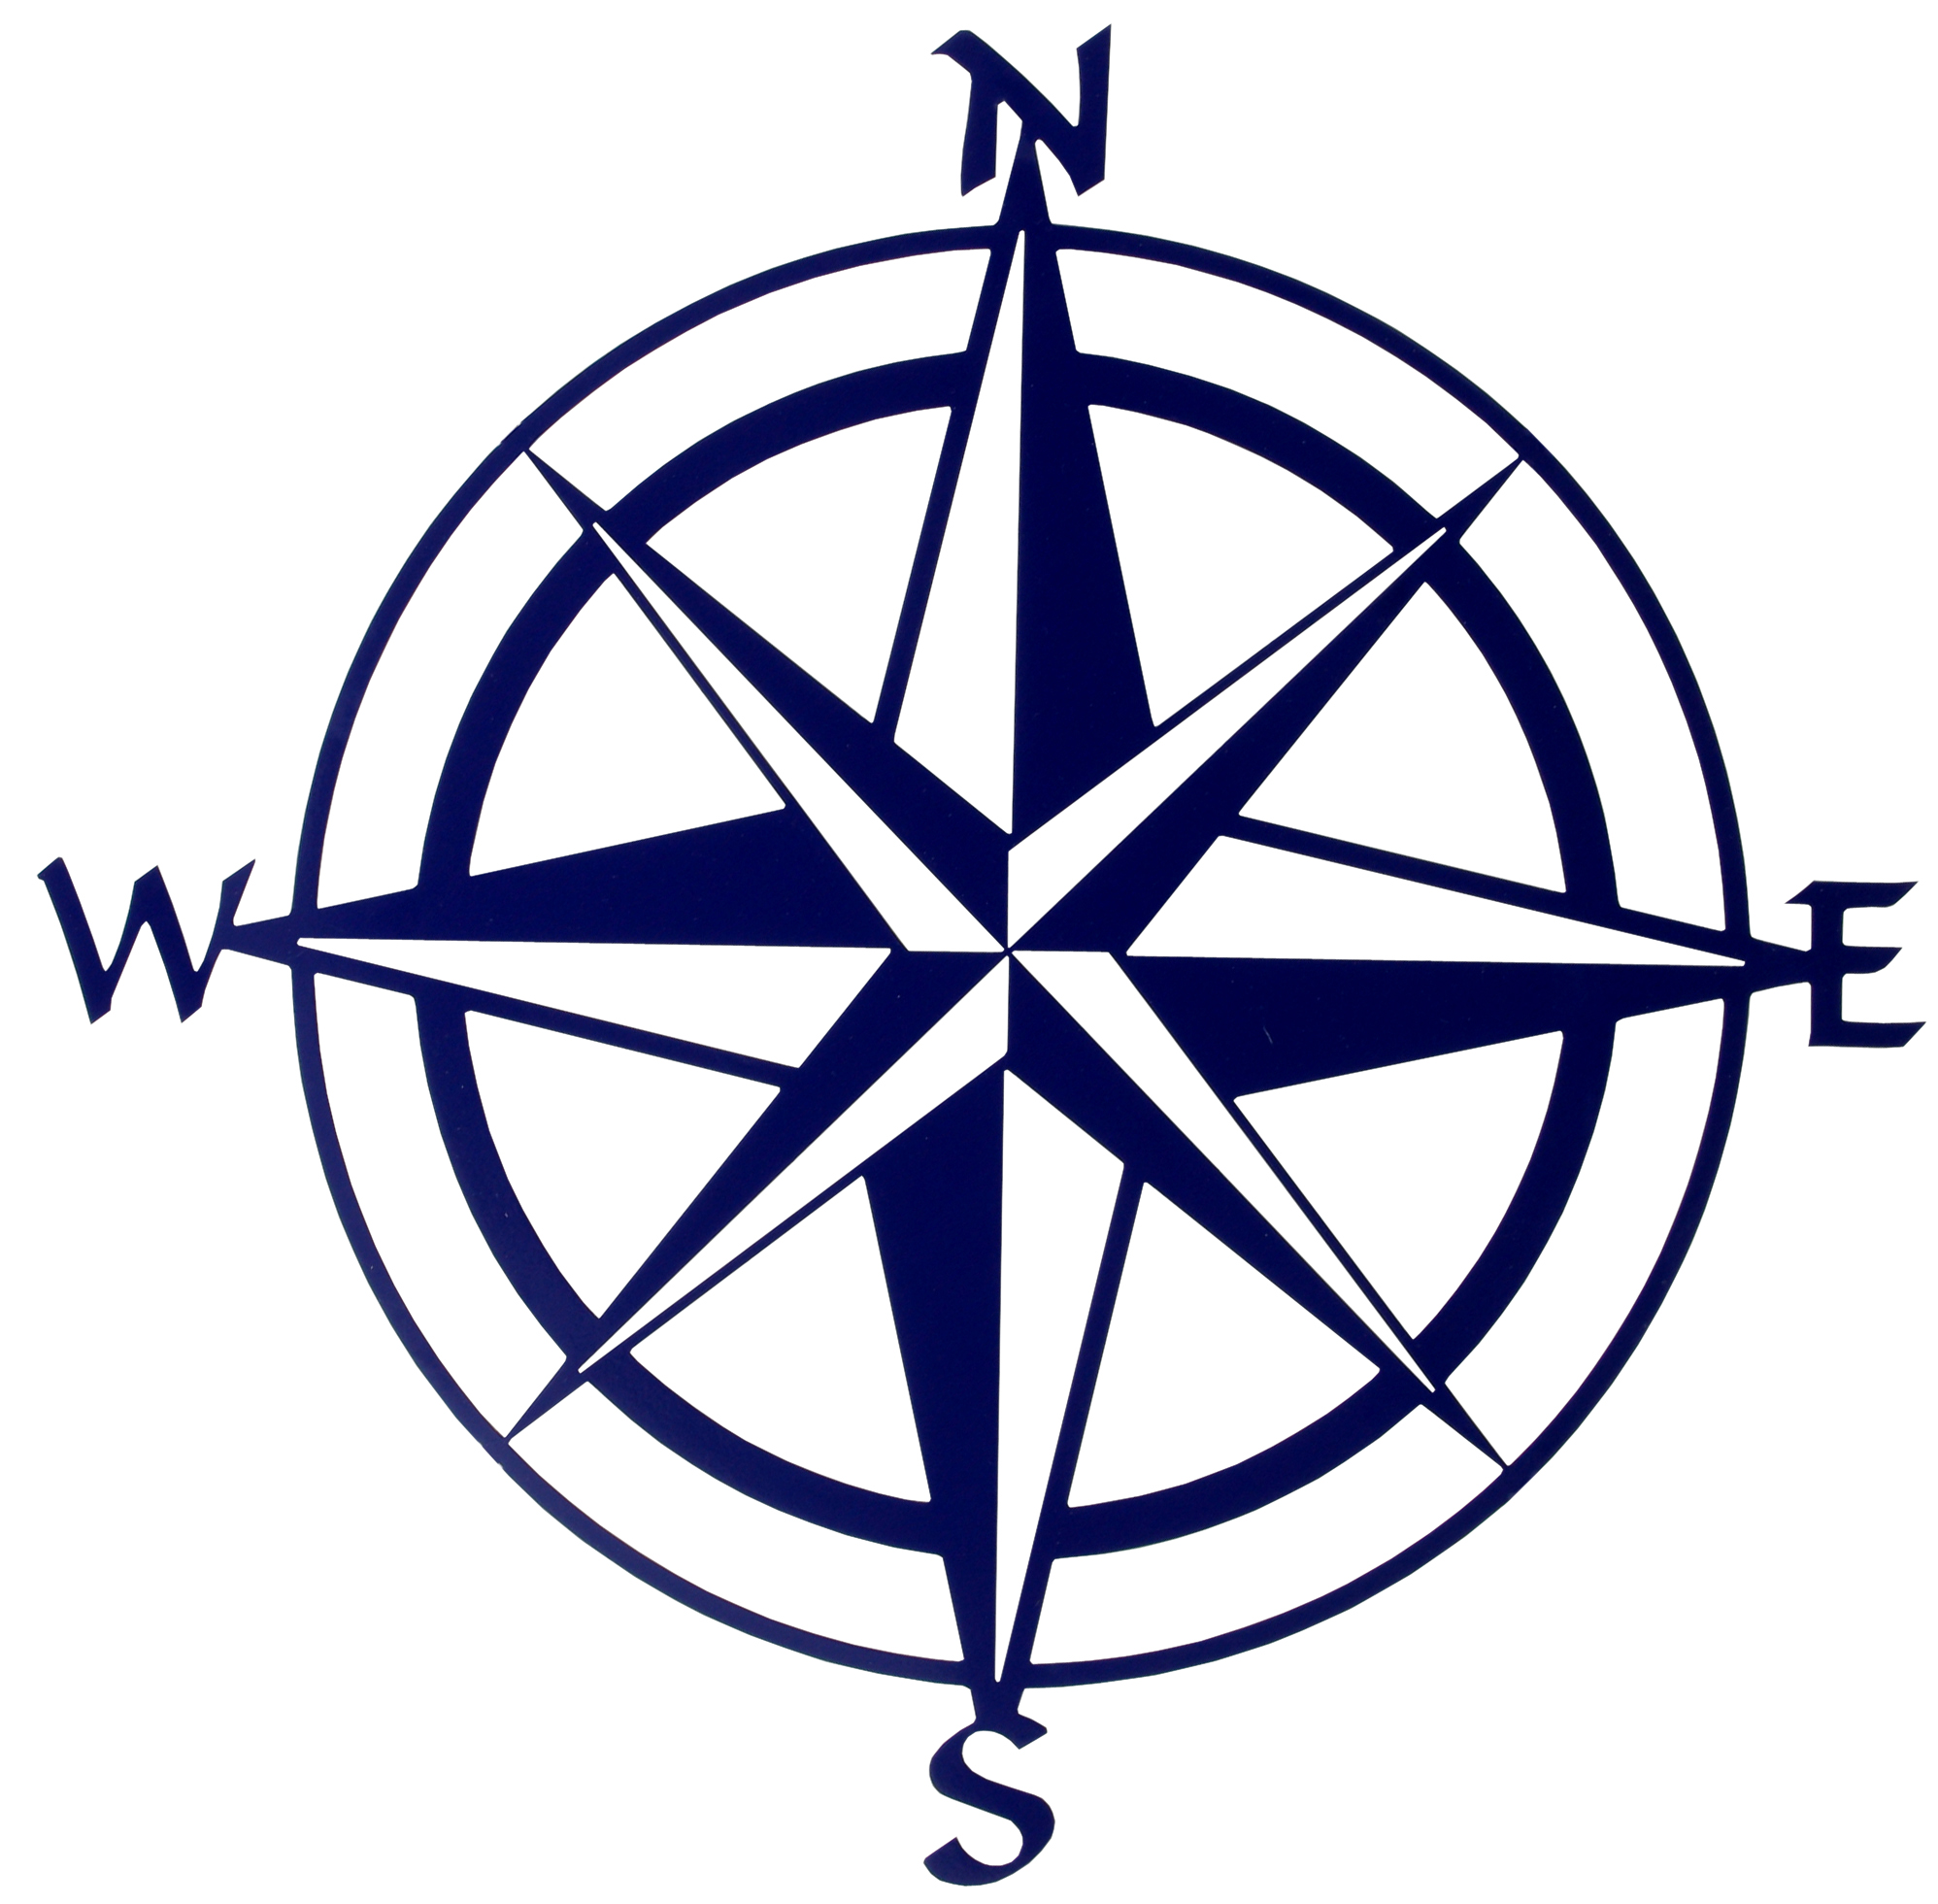 Compass rose pictures clipart png transparent stock Free Compass Rose Clipart, Download Free Clip Art, Free Clip Art on ... png transparent stock